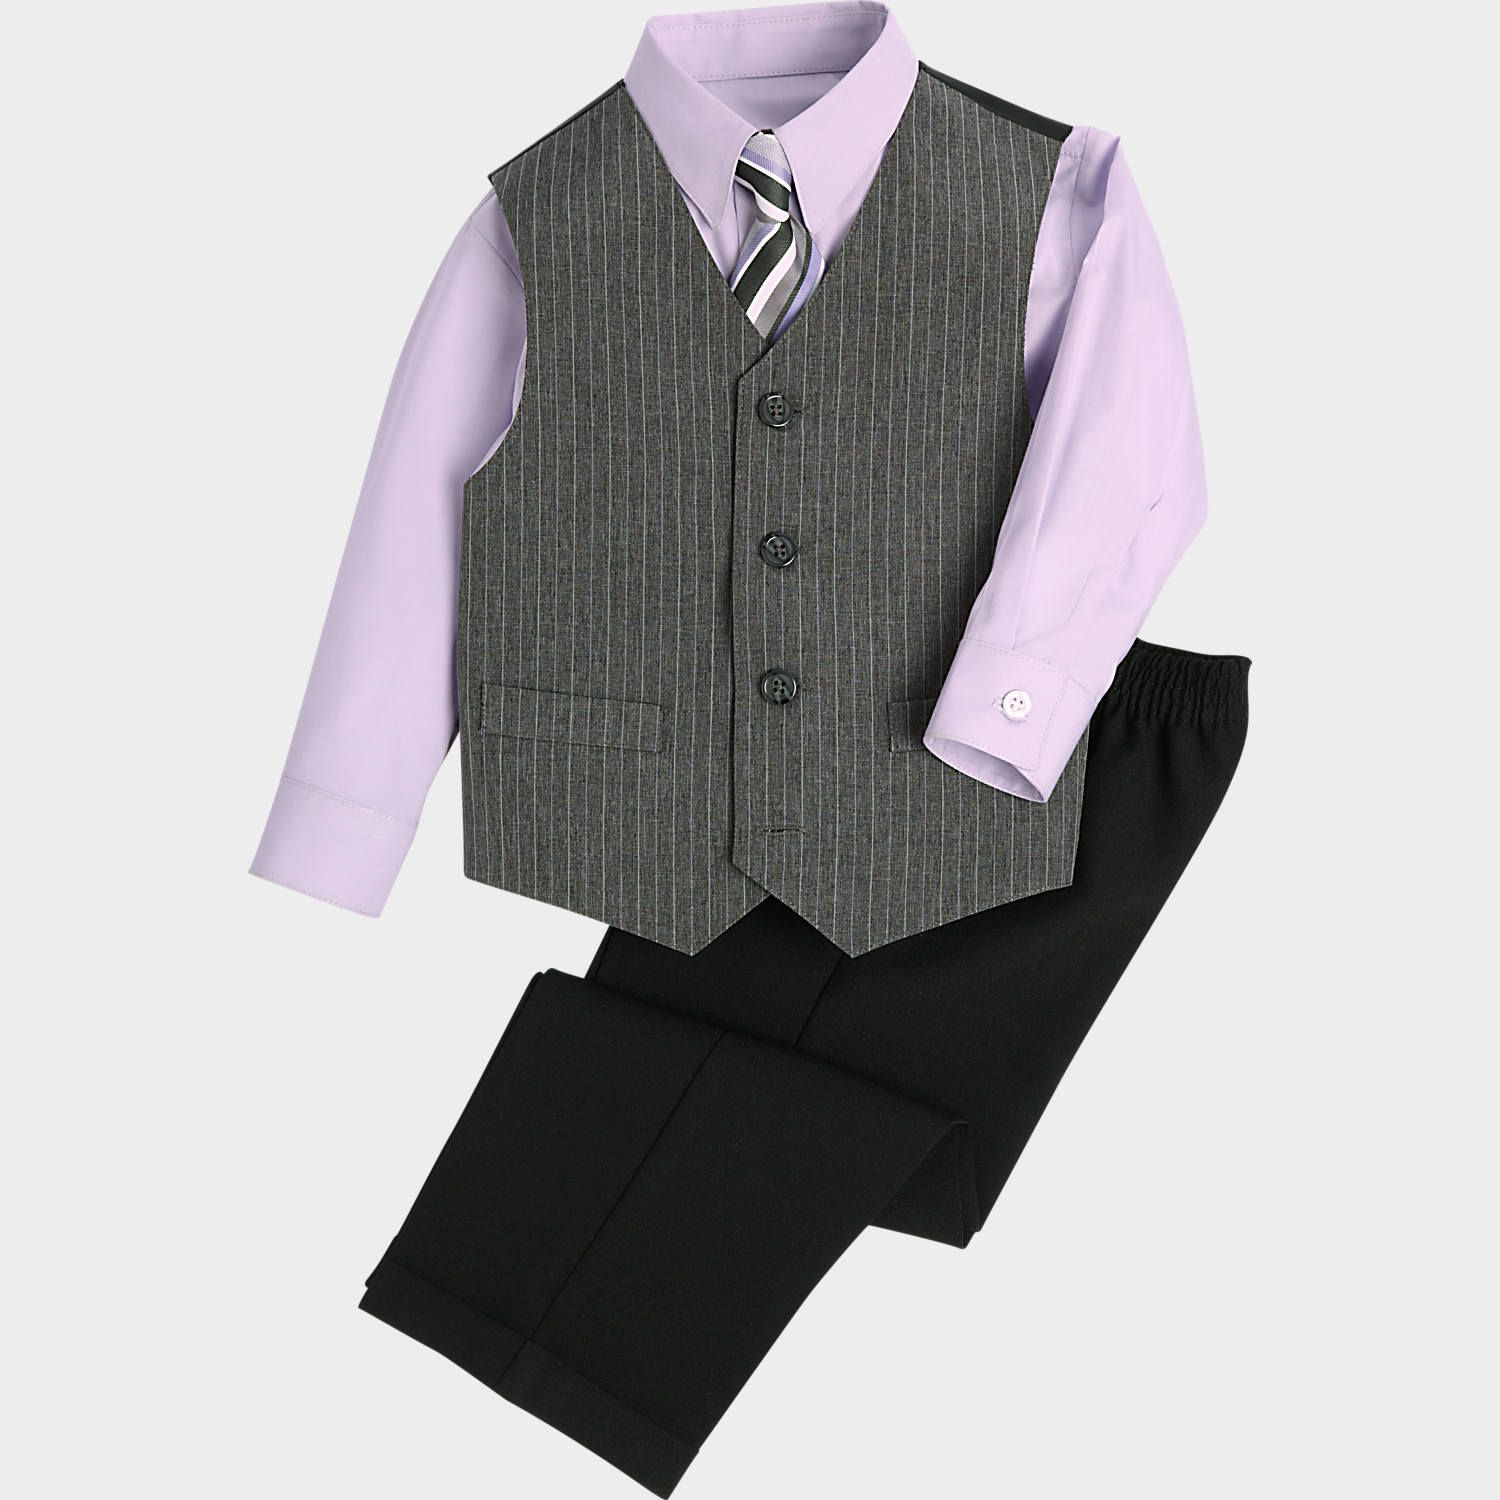 a128a1fc8 Joseph Feiss Gray and Lavender Pinstripe Vest, Pant, Shirt, and Tie Set -  Boy's Sweaters & Vests | Men's Wearhouse